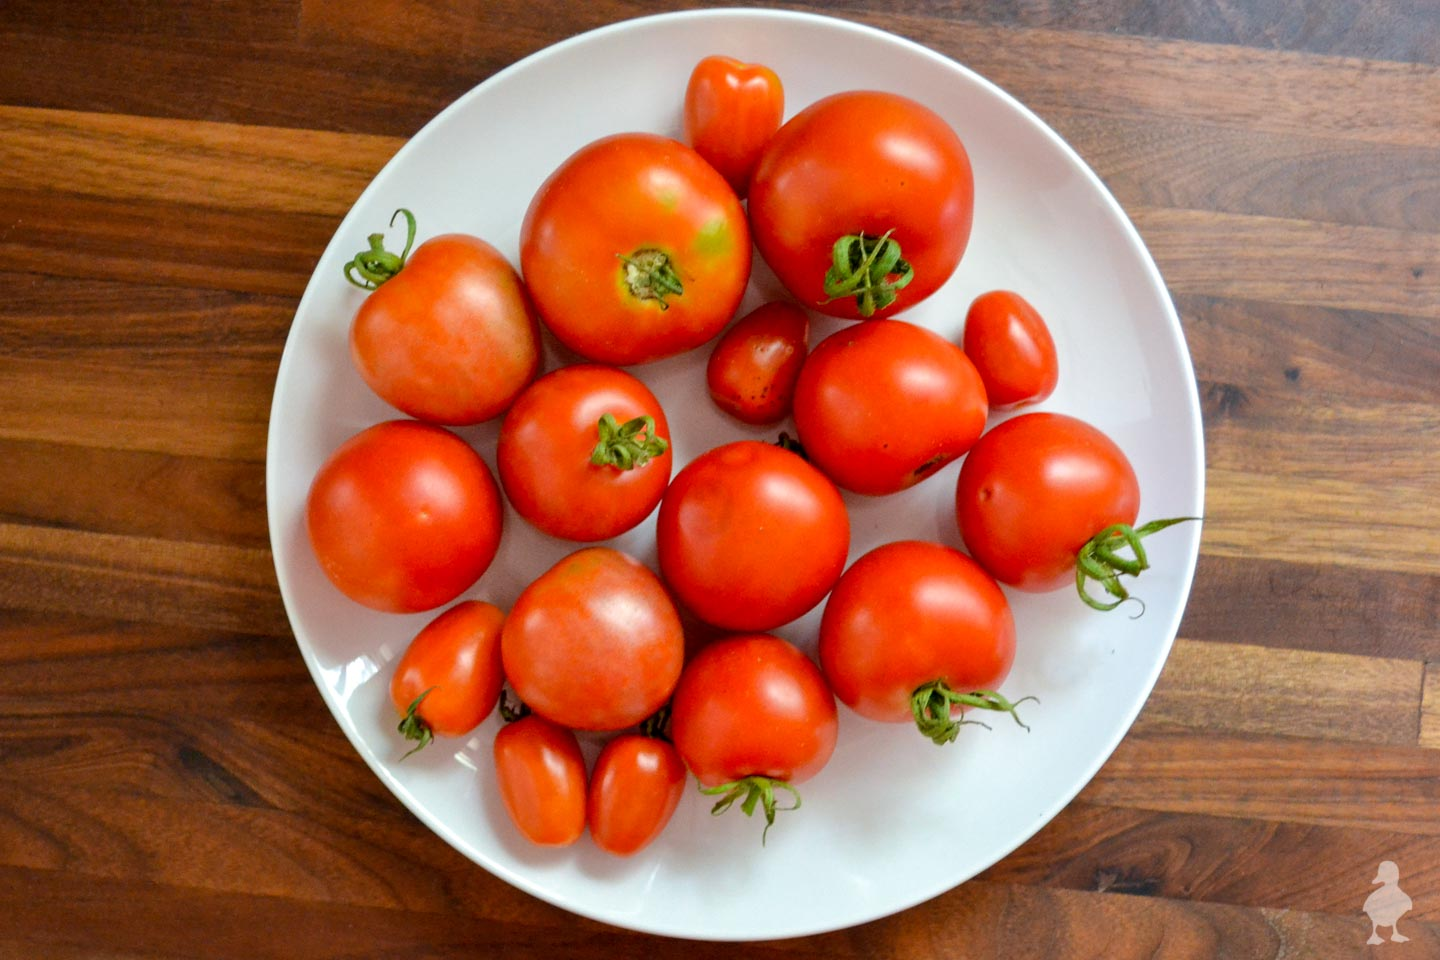 plate of freshly picked tomatoes